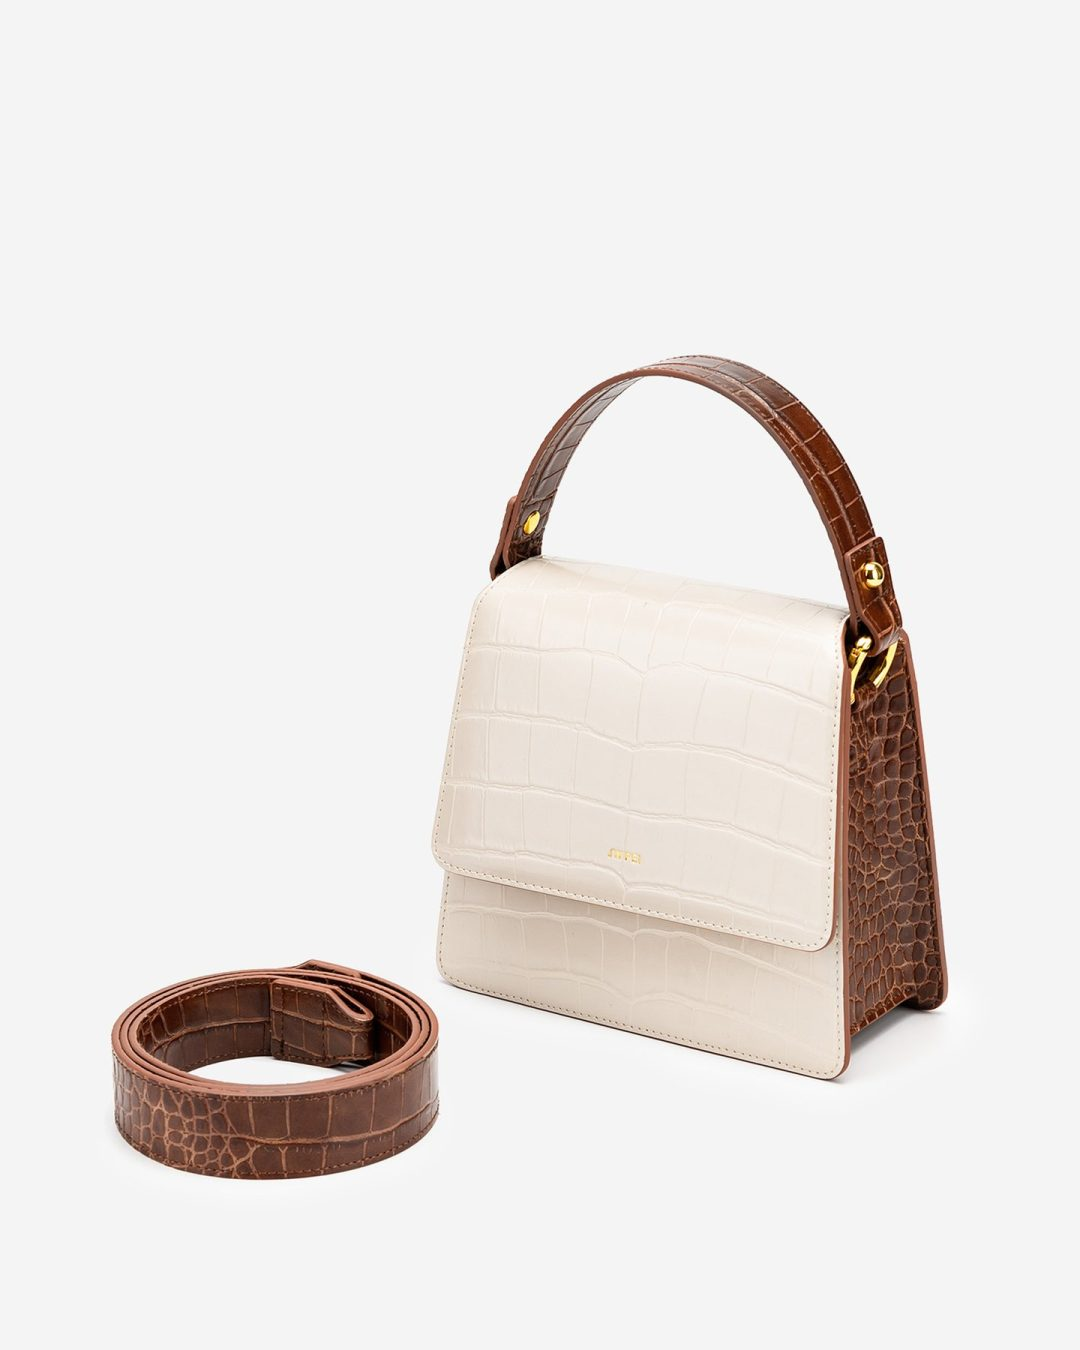 The Fae Acrylic in Beige & Brown Croc for best minimalist purses